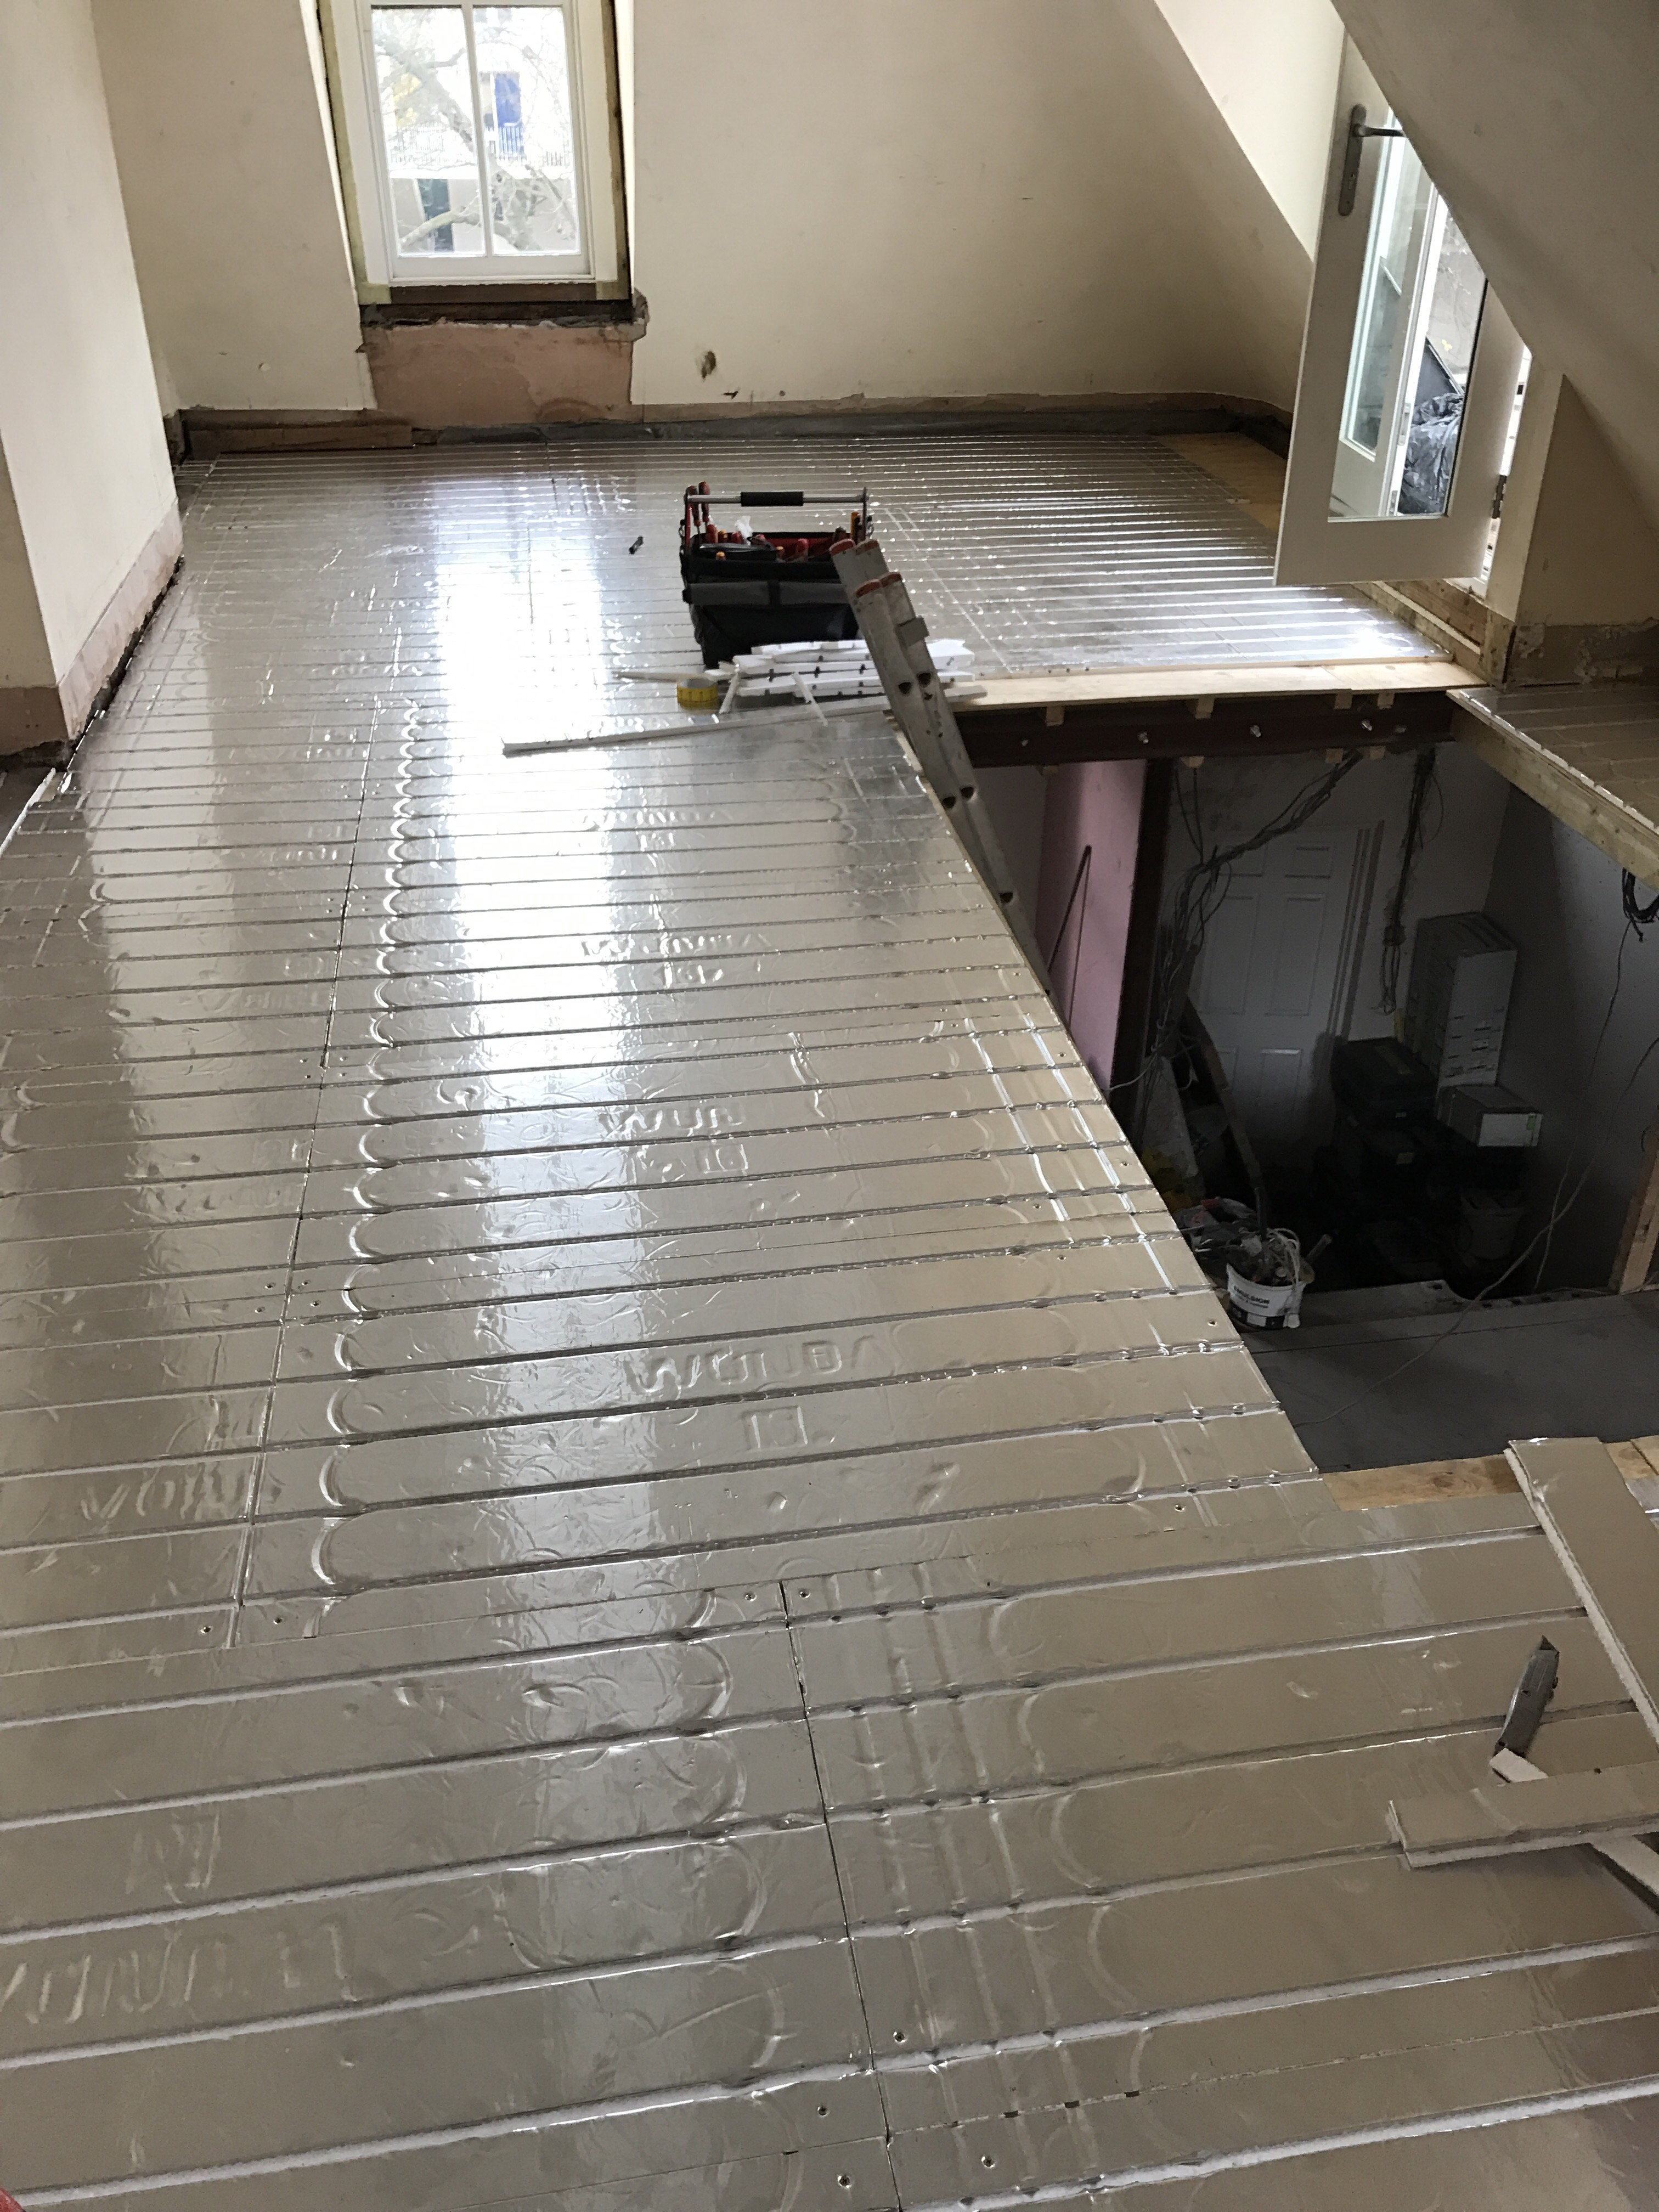 Vunda underfloor heating panels